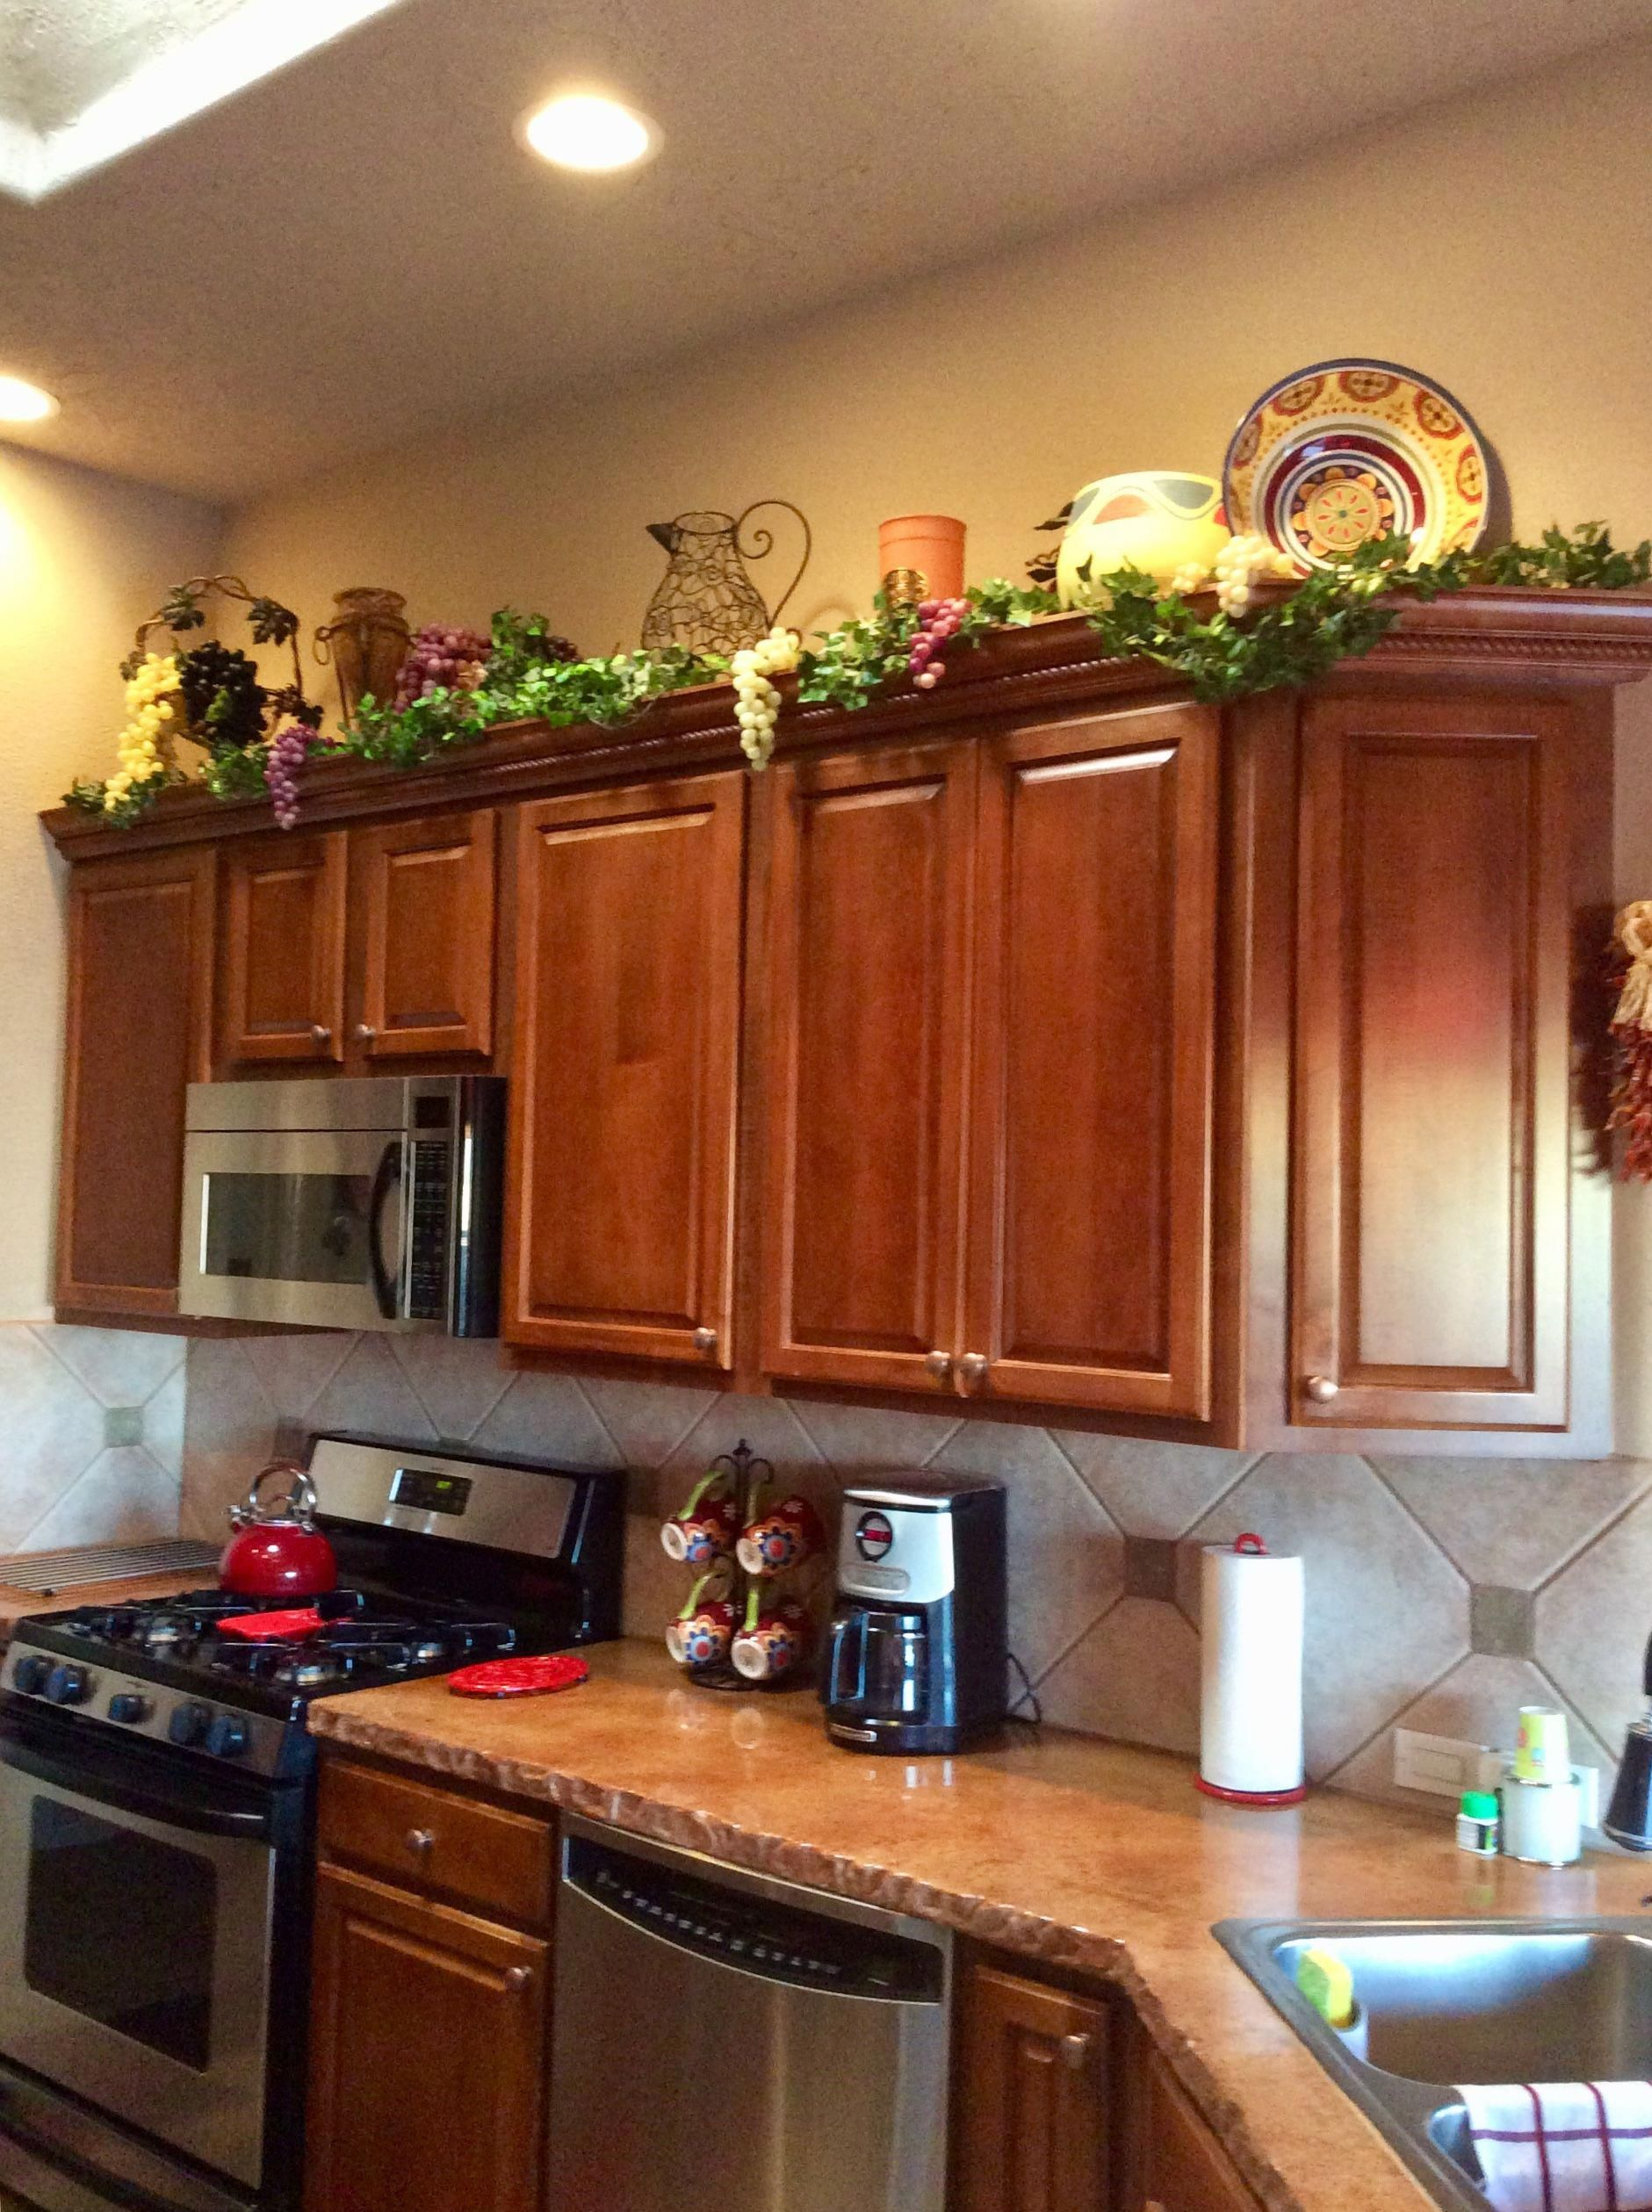 Decorating Above The Kitchen Cabinets Tuscandesign Decorating